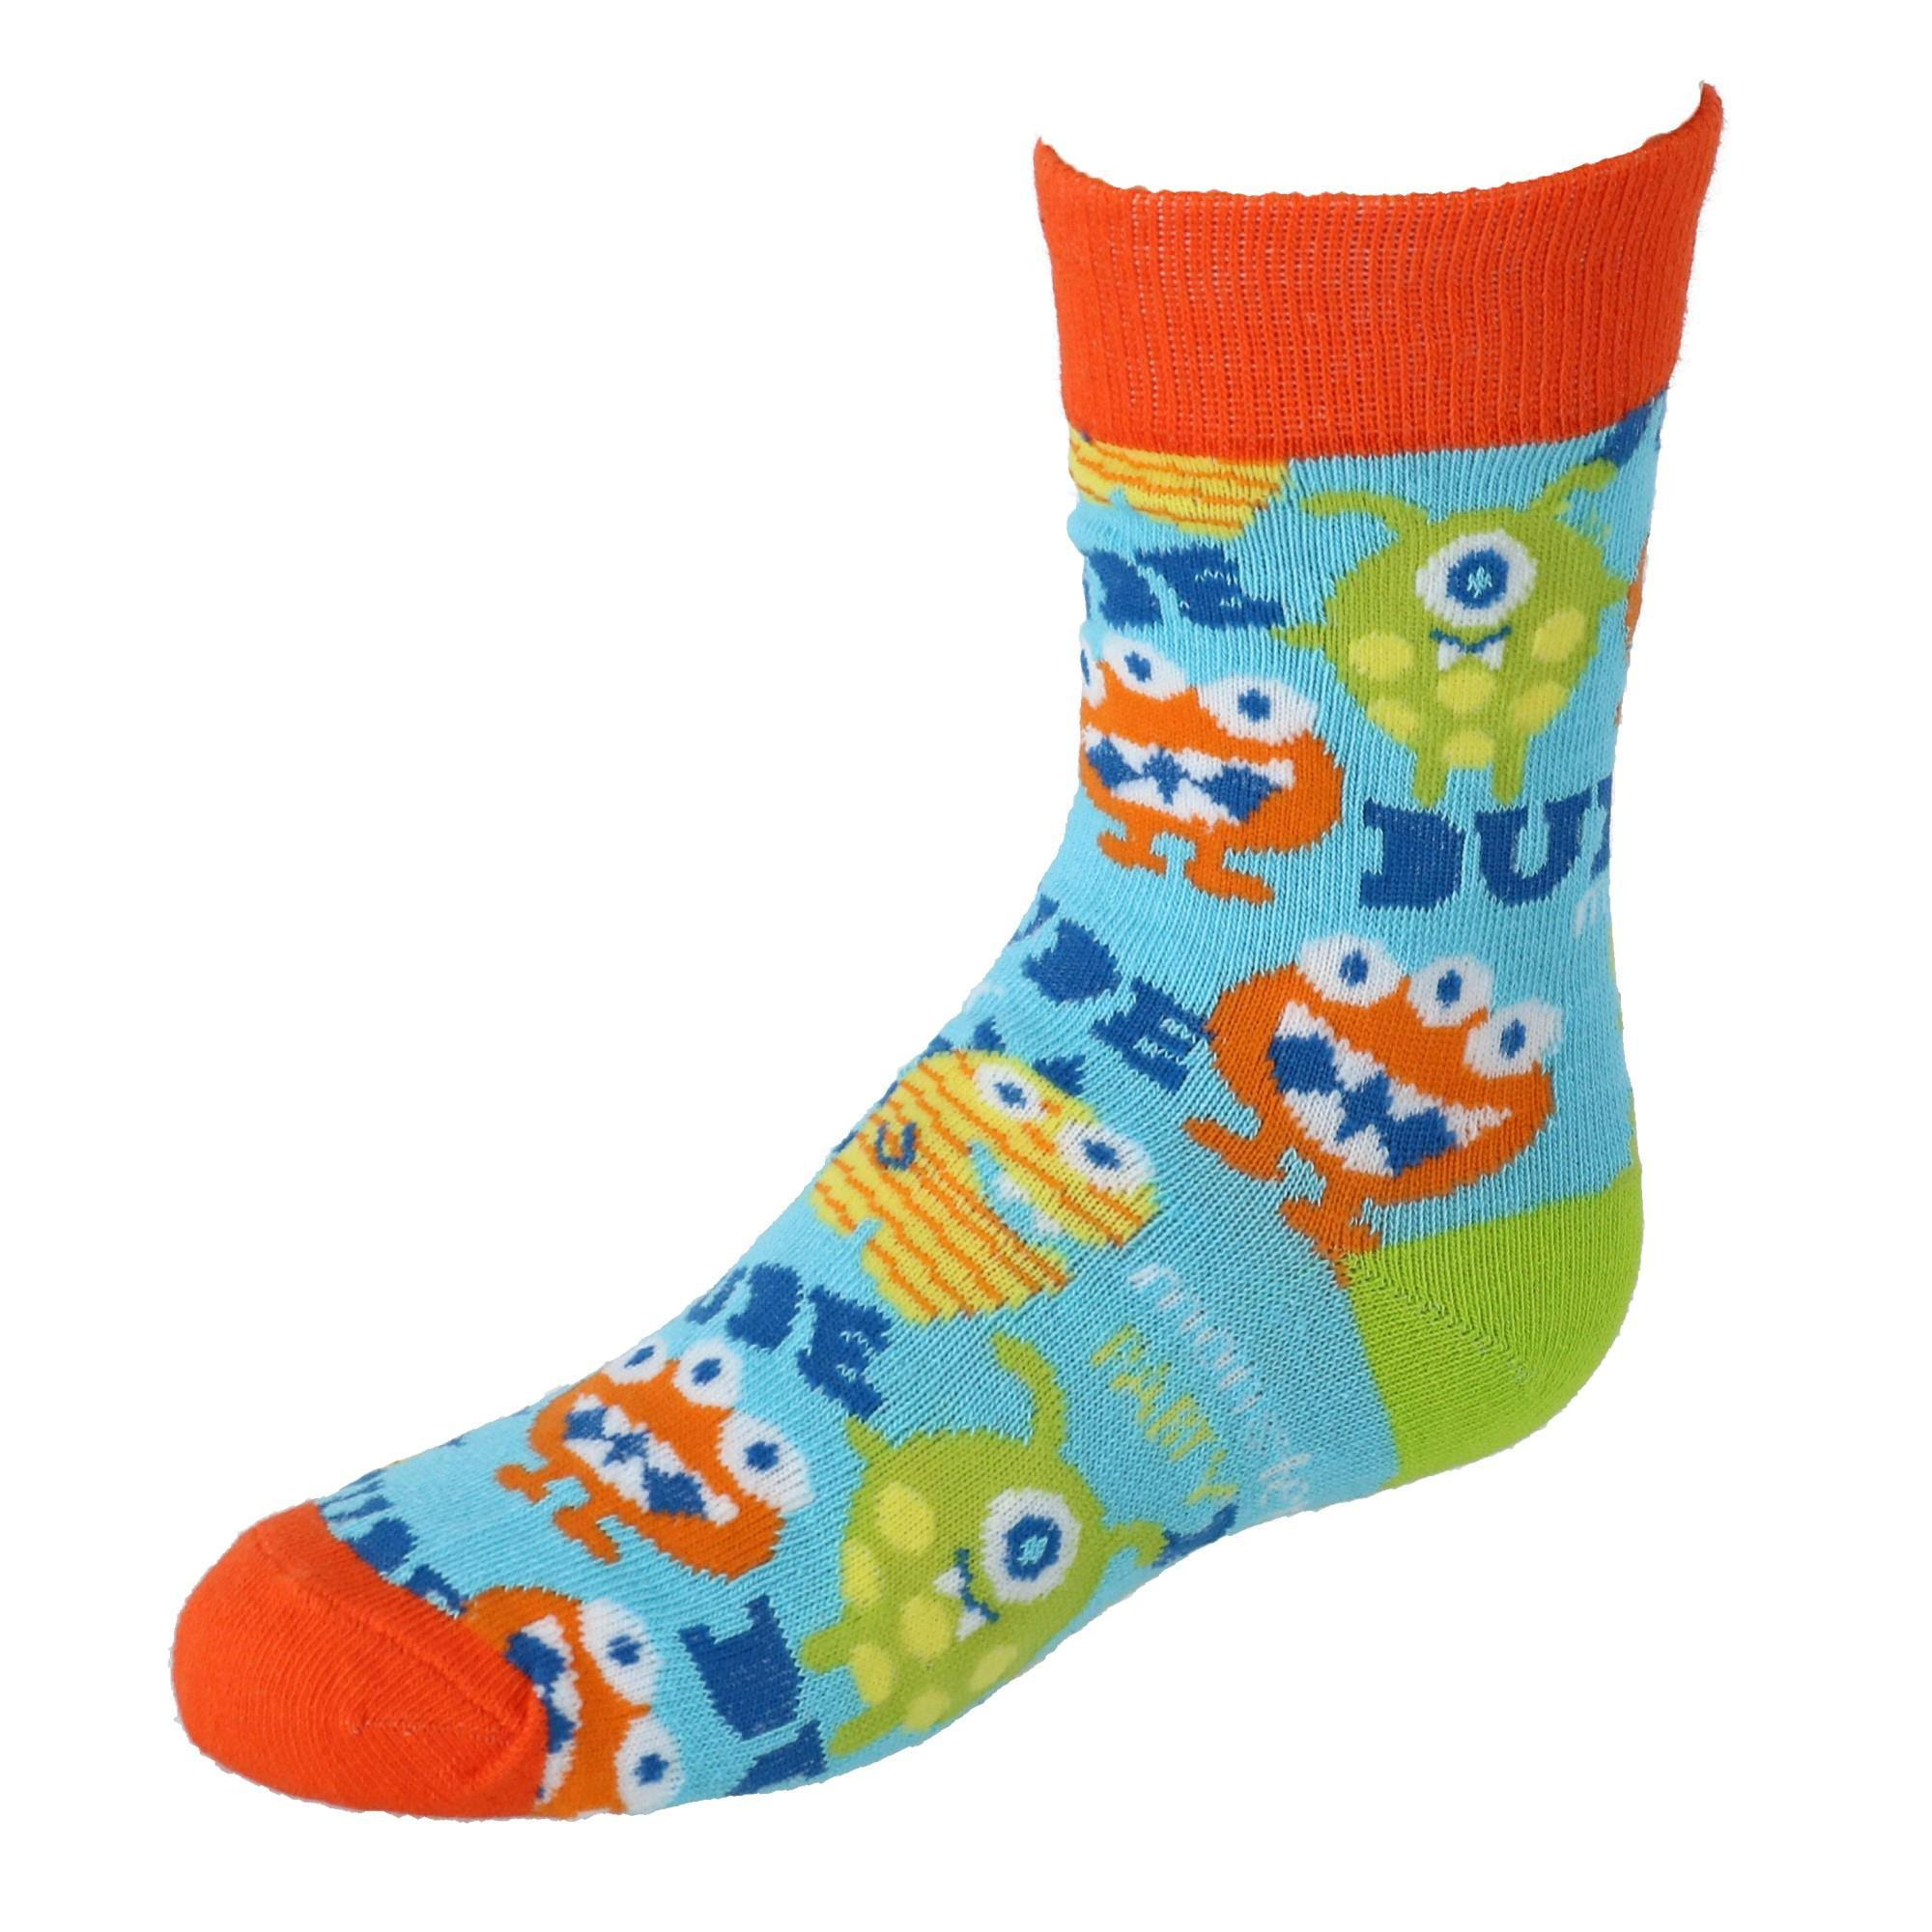 Two Left Feet Kids Novelty Crew Socks - Monster Small Medium